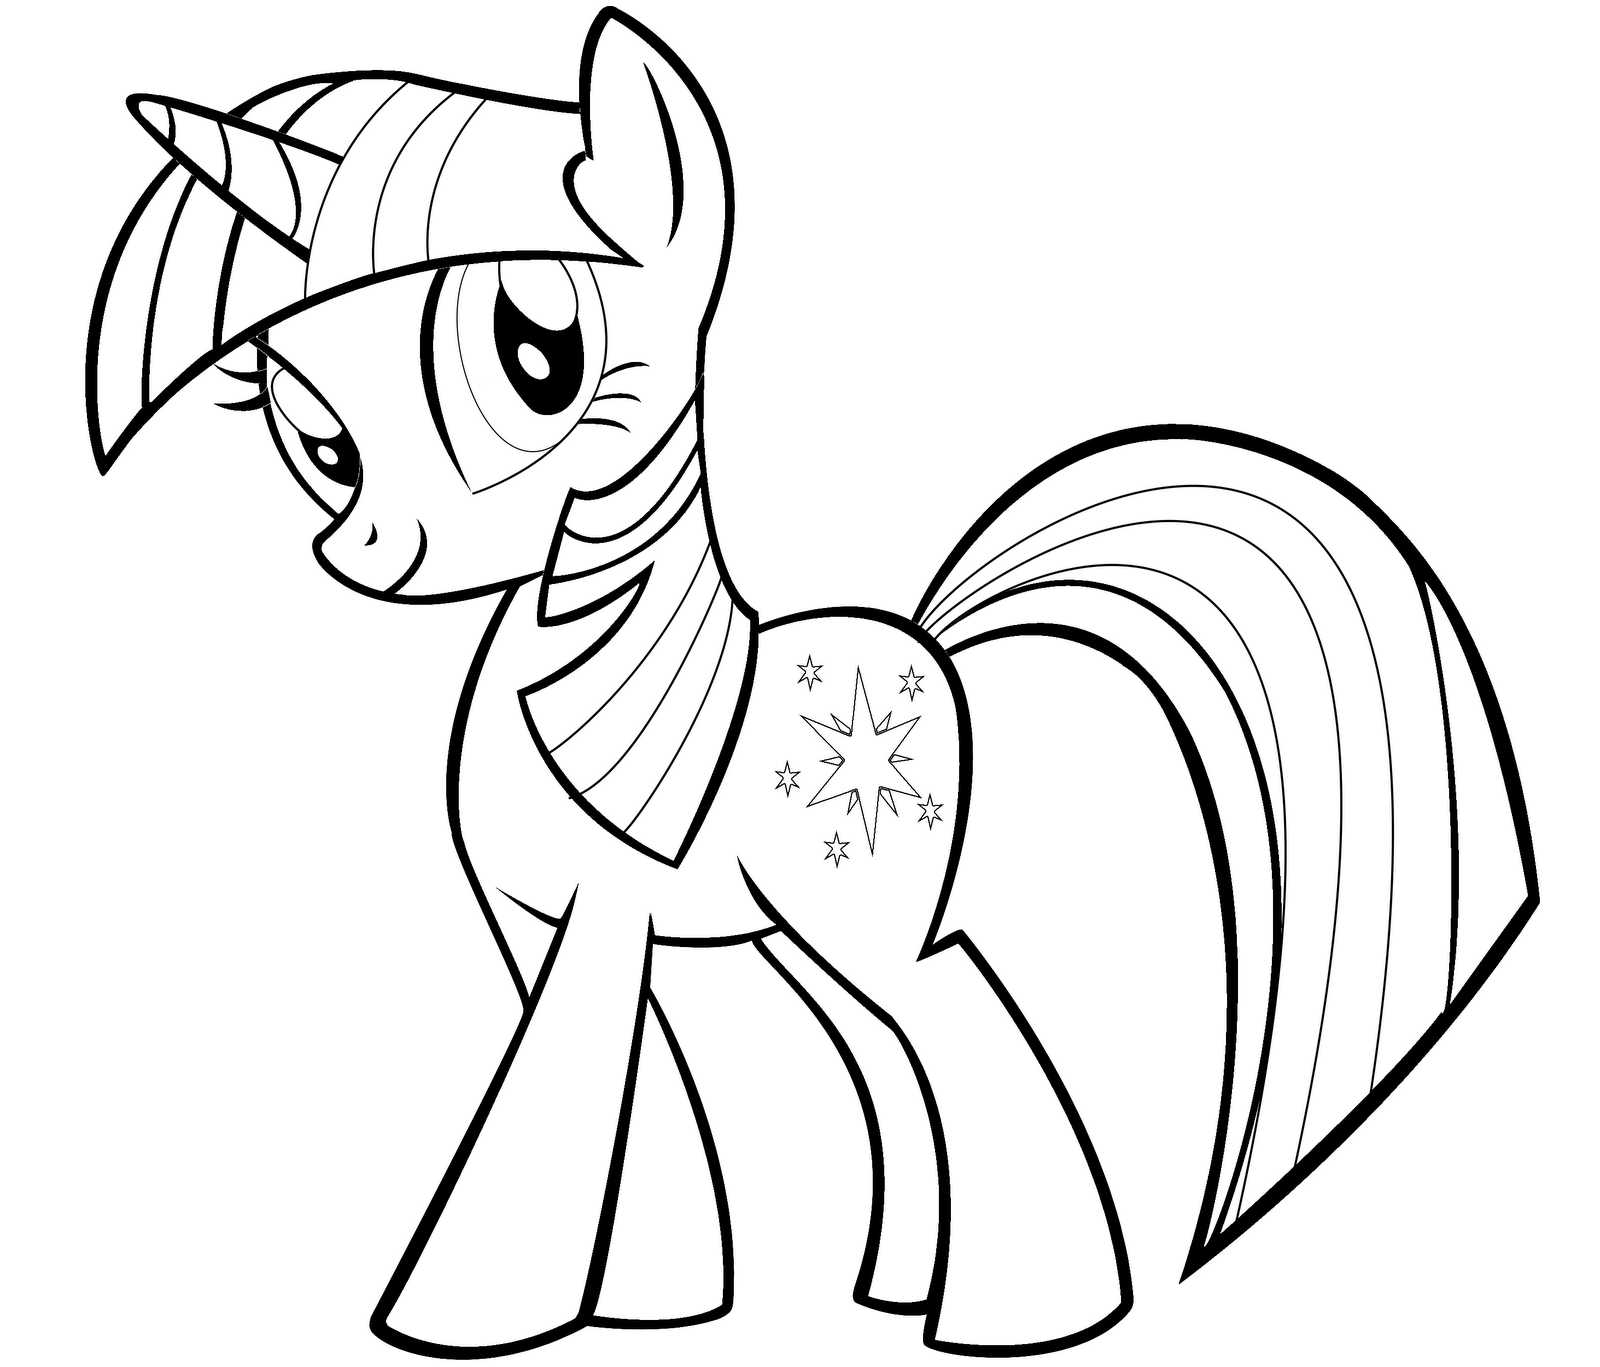 twilight coloring pages My Little Pony Twilight Sparkle Coloring Pages | My little pony  twilight coloring pages